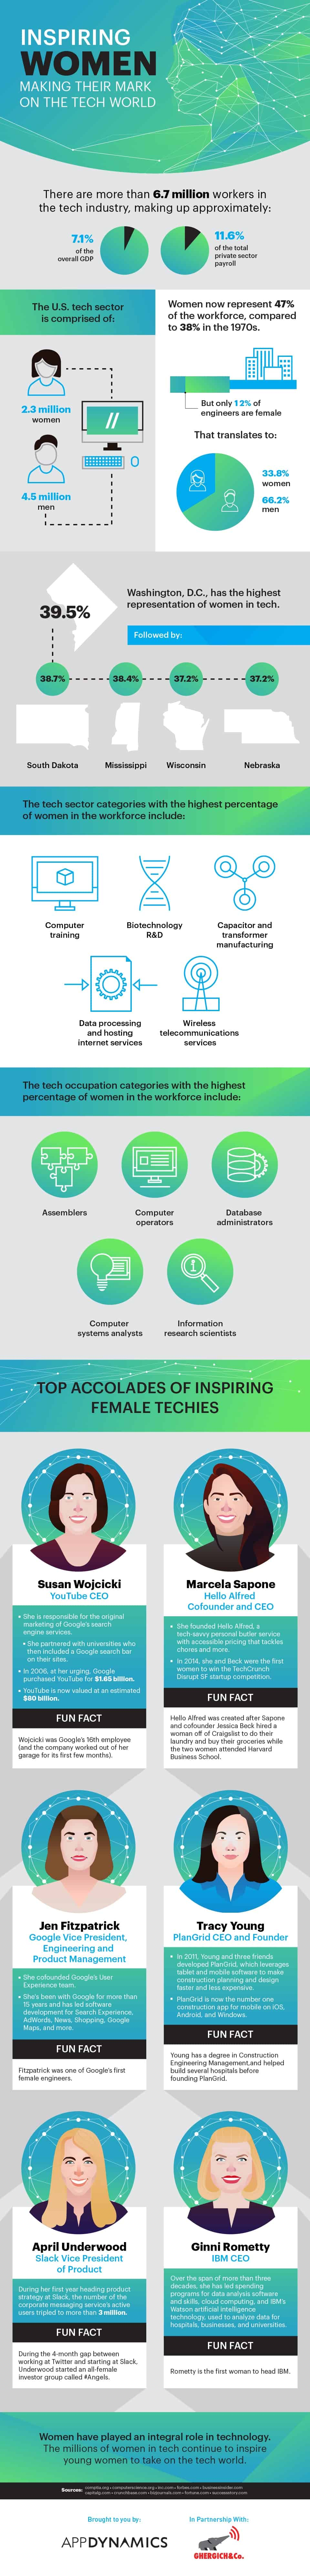 Inspiring Women Making Their Mark on the Tech World